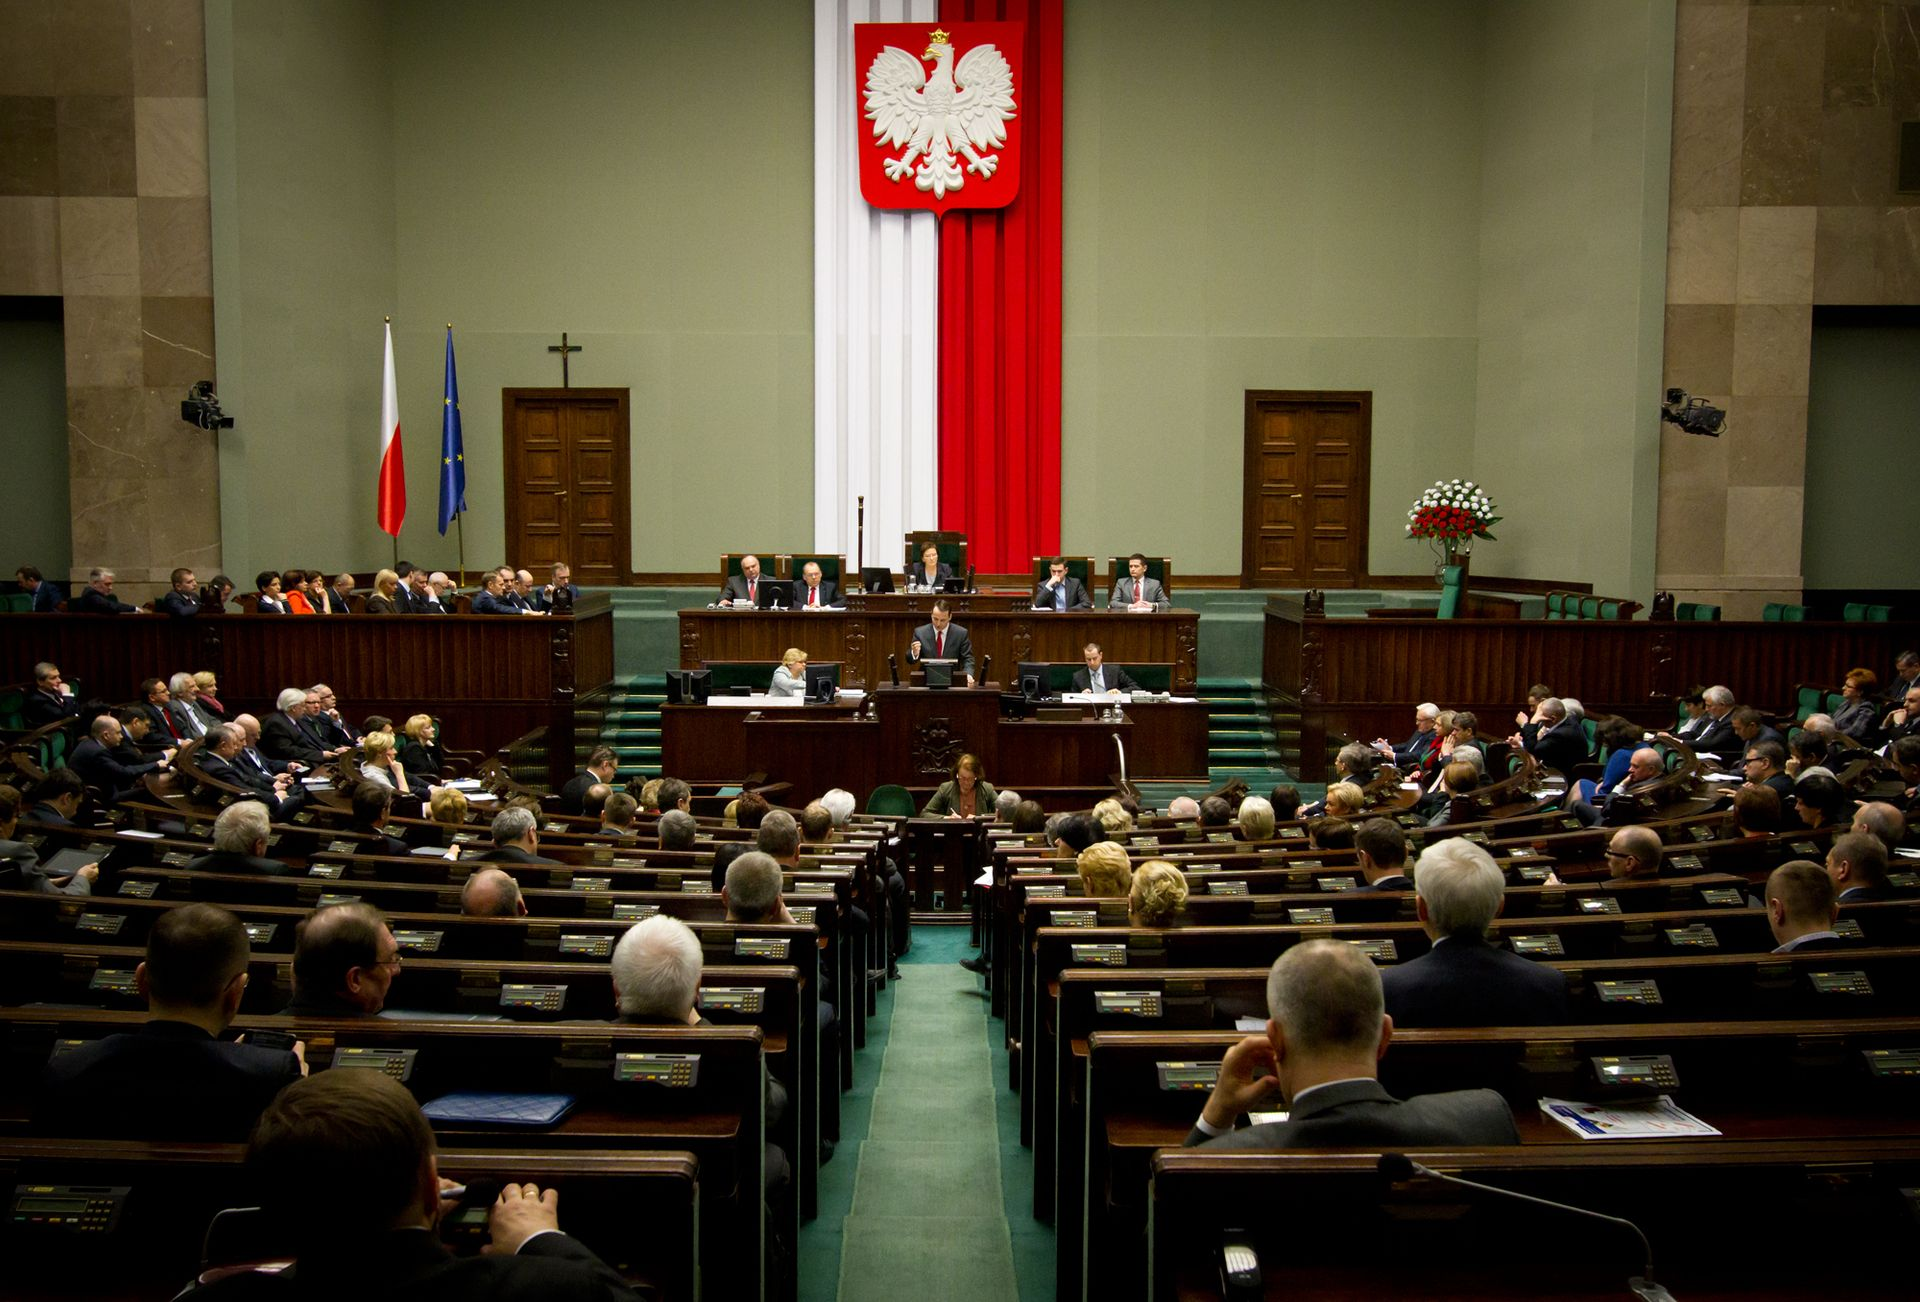 Poland's new law sets a 30-year limit on any claims to property, including art, stolen by Nazi Germany Photo:  Ministry of Foreign Affairs of the Republic of Poland